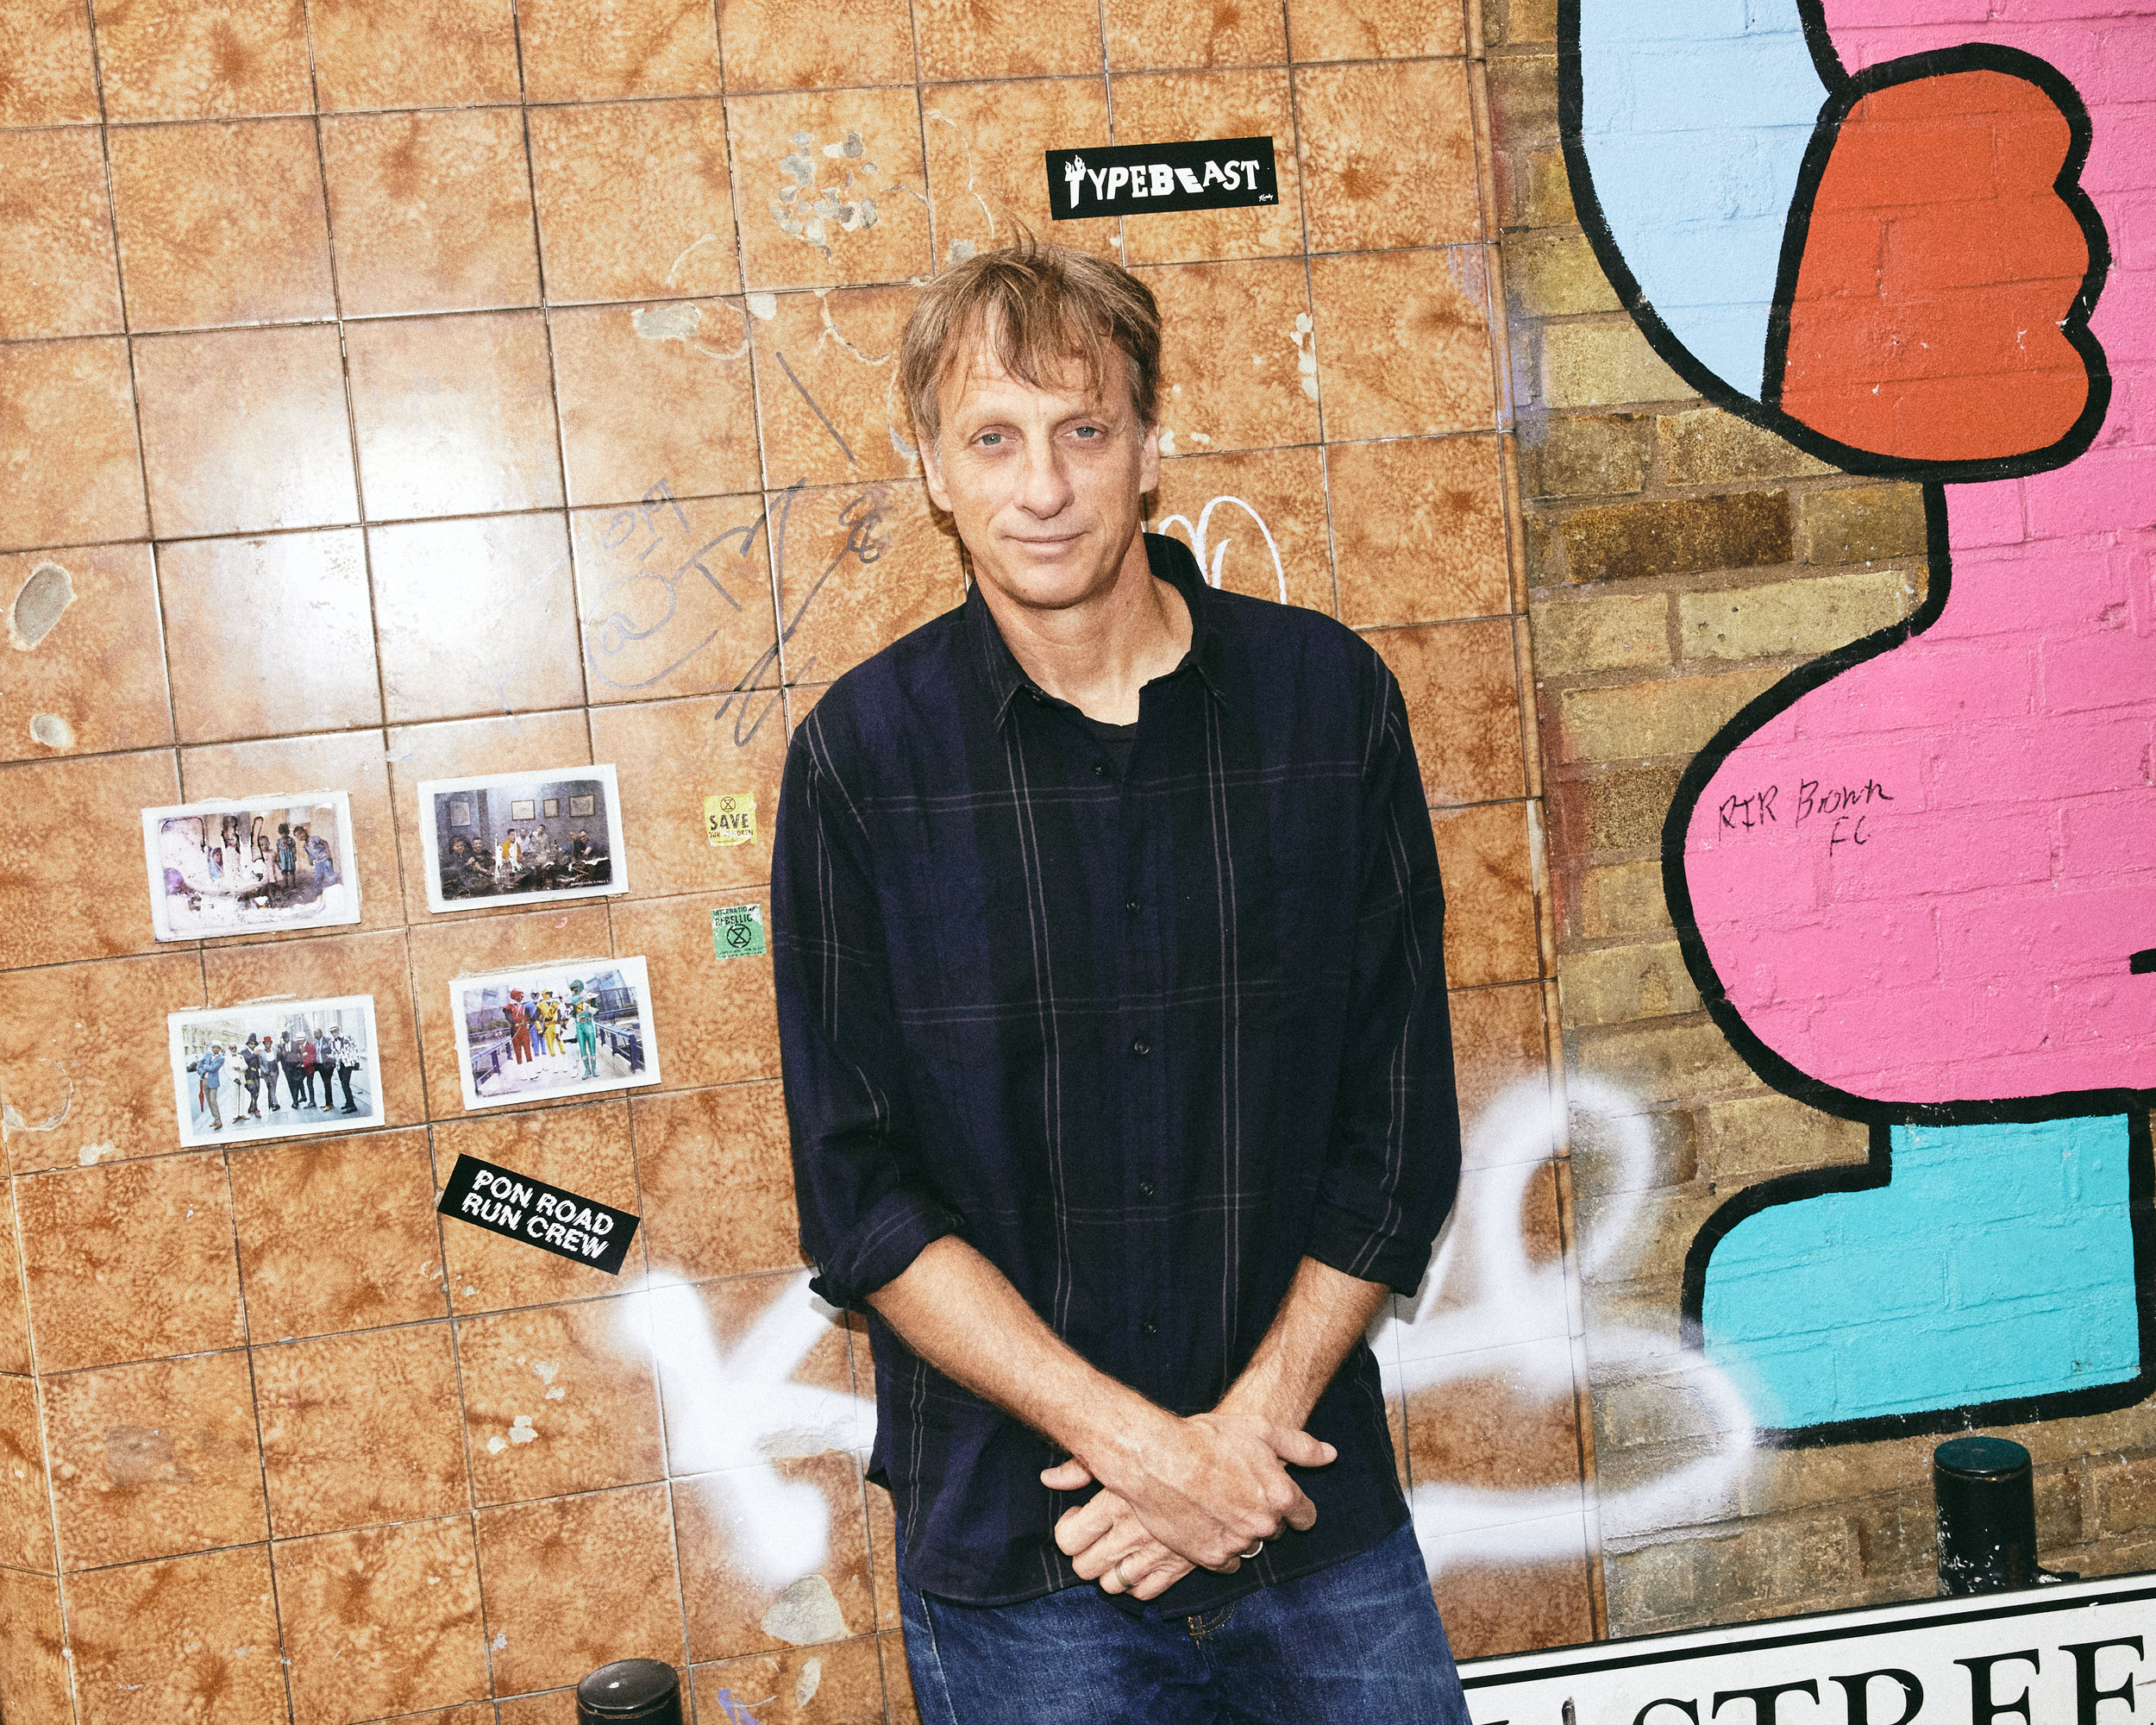 BRIEF - Work closely with legendary skateboarder Tony Hawk and his team to launch Tony Hawk Signature Line clothing to a global audience.